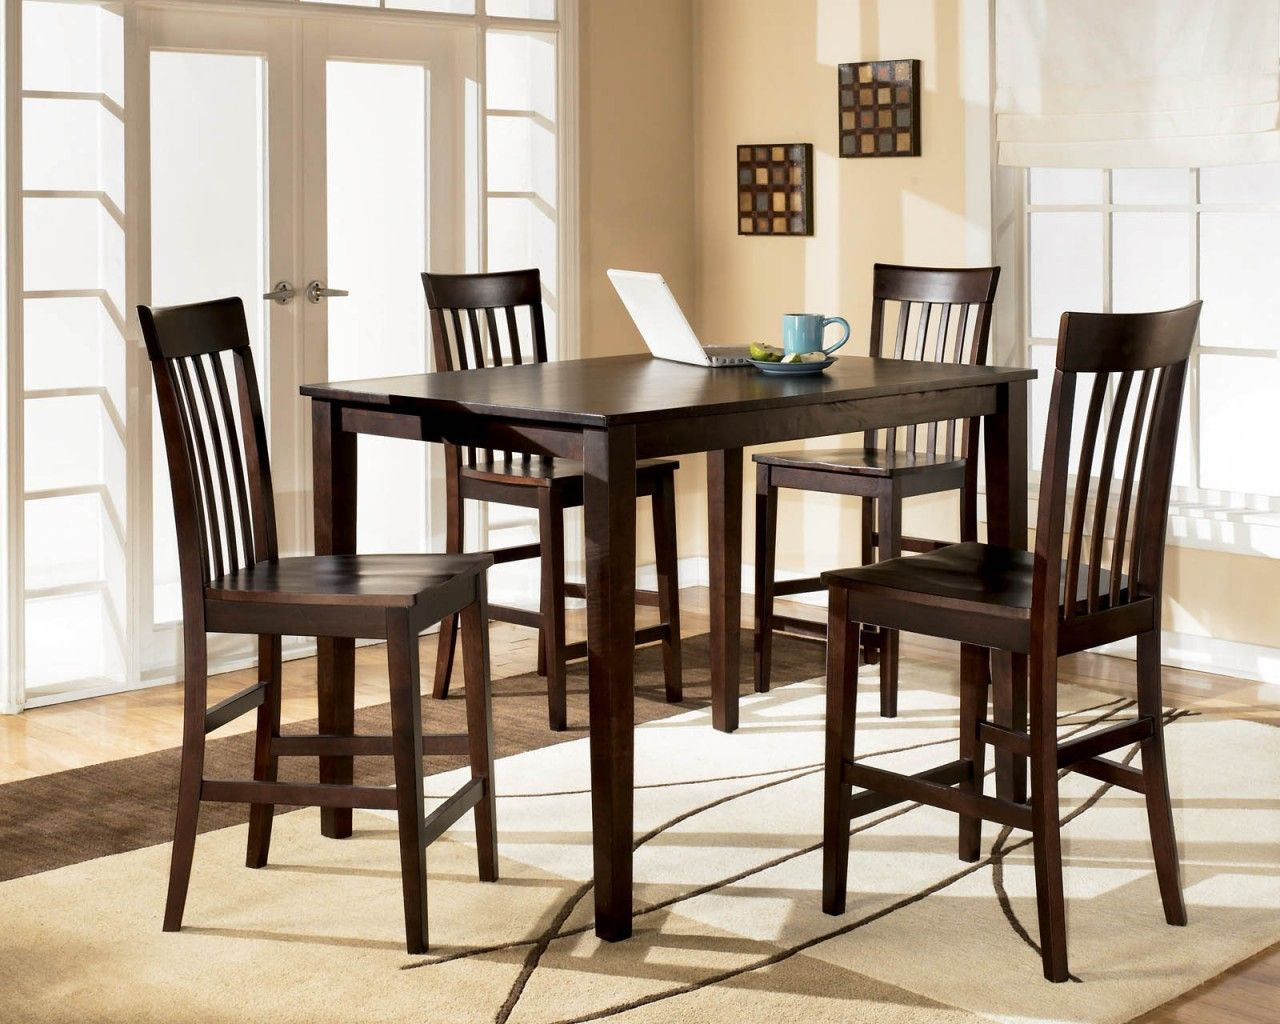 Kitchen Set Table And Chairs Top 25 Ideas About Counter Height Kitchen Table On Pinterest